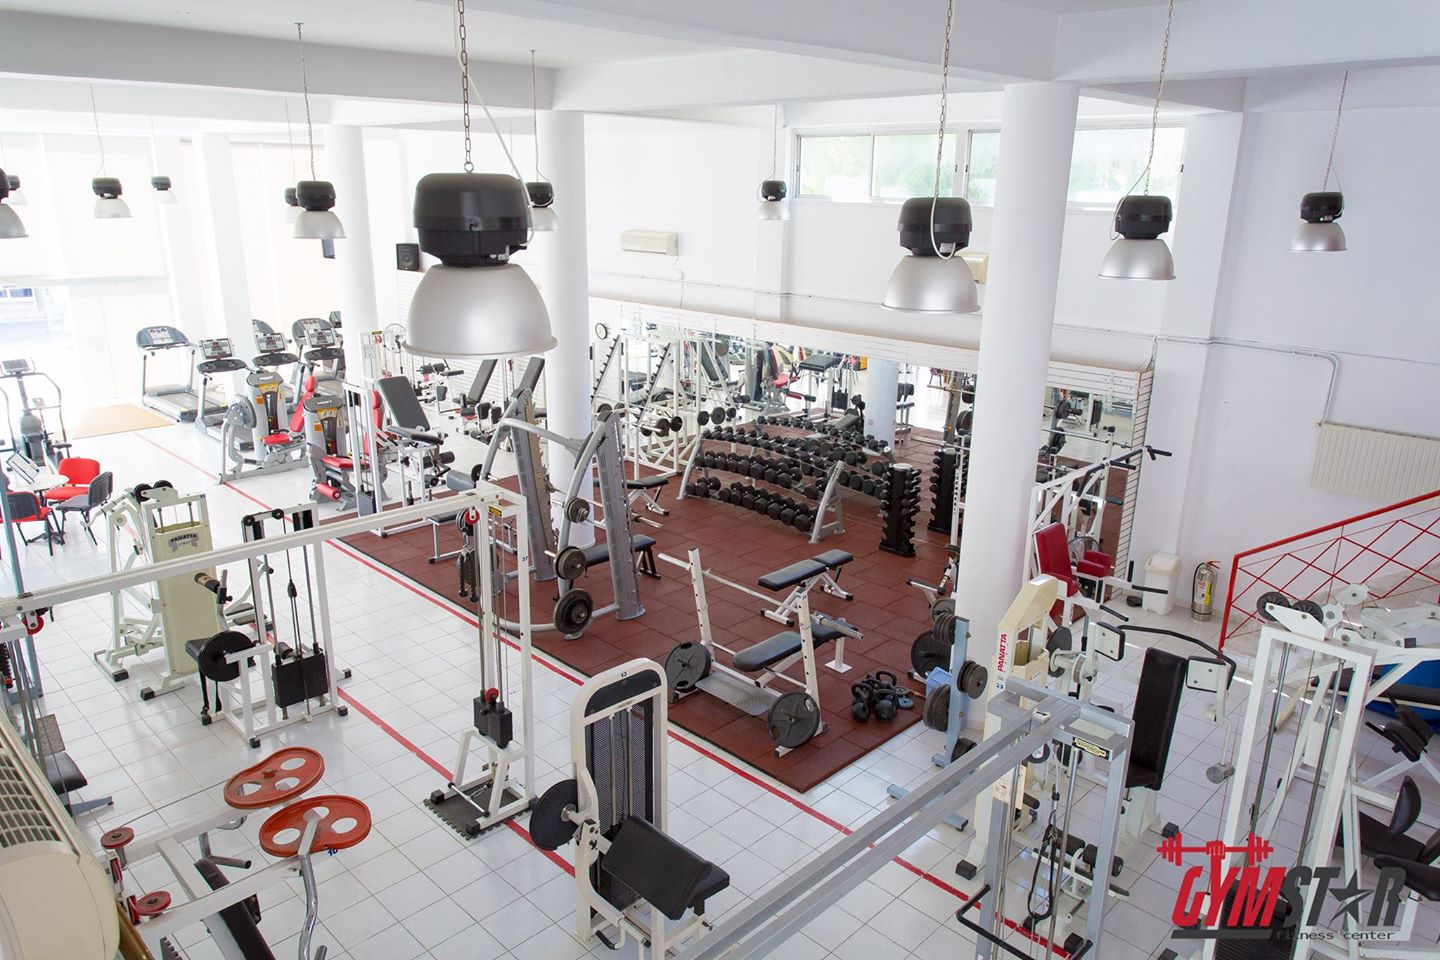 Gym Star Fitness Center Larnaca Cover Image on XploreCyprus